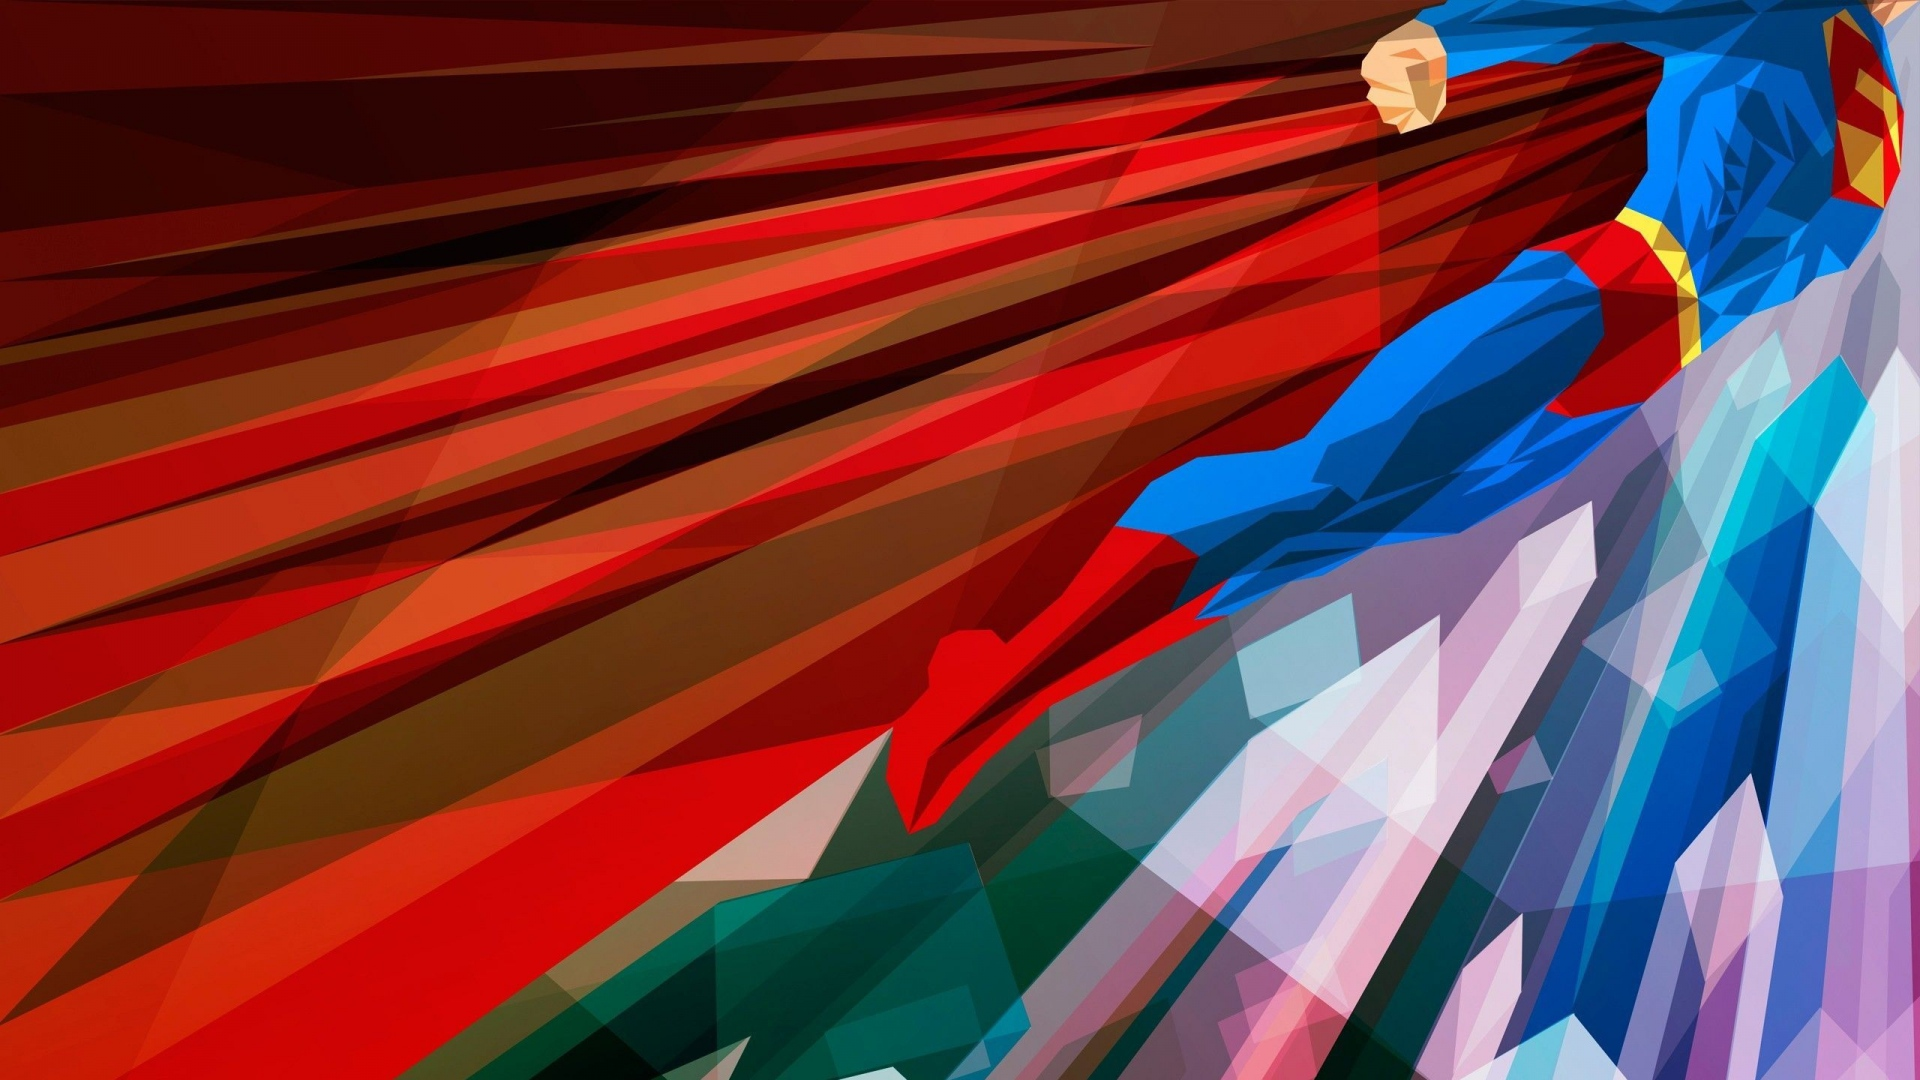 Download Wallpaper 1920x1080 Superhero Superman Bright Full HD